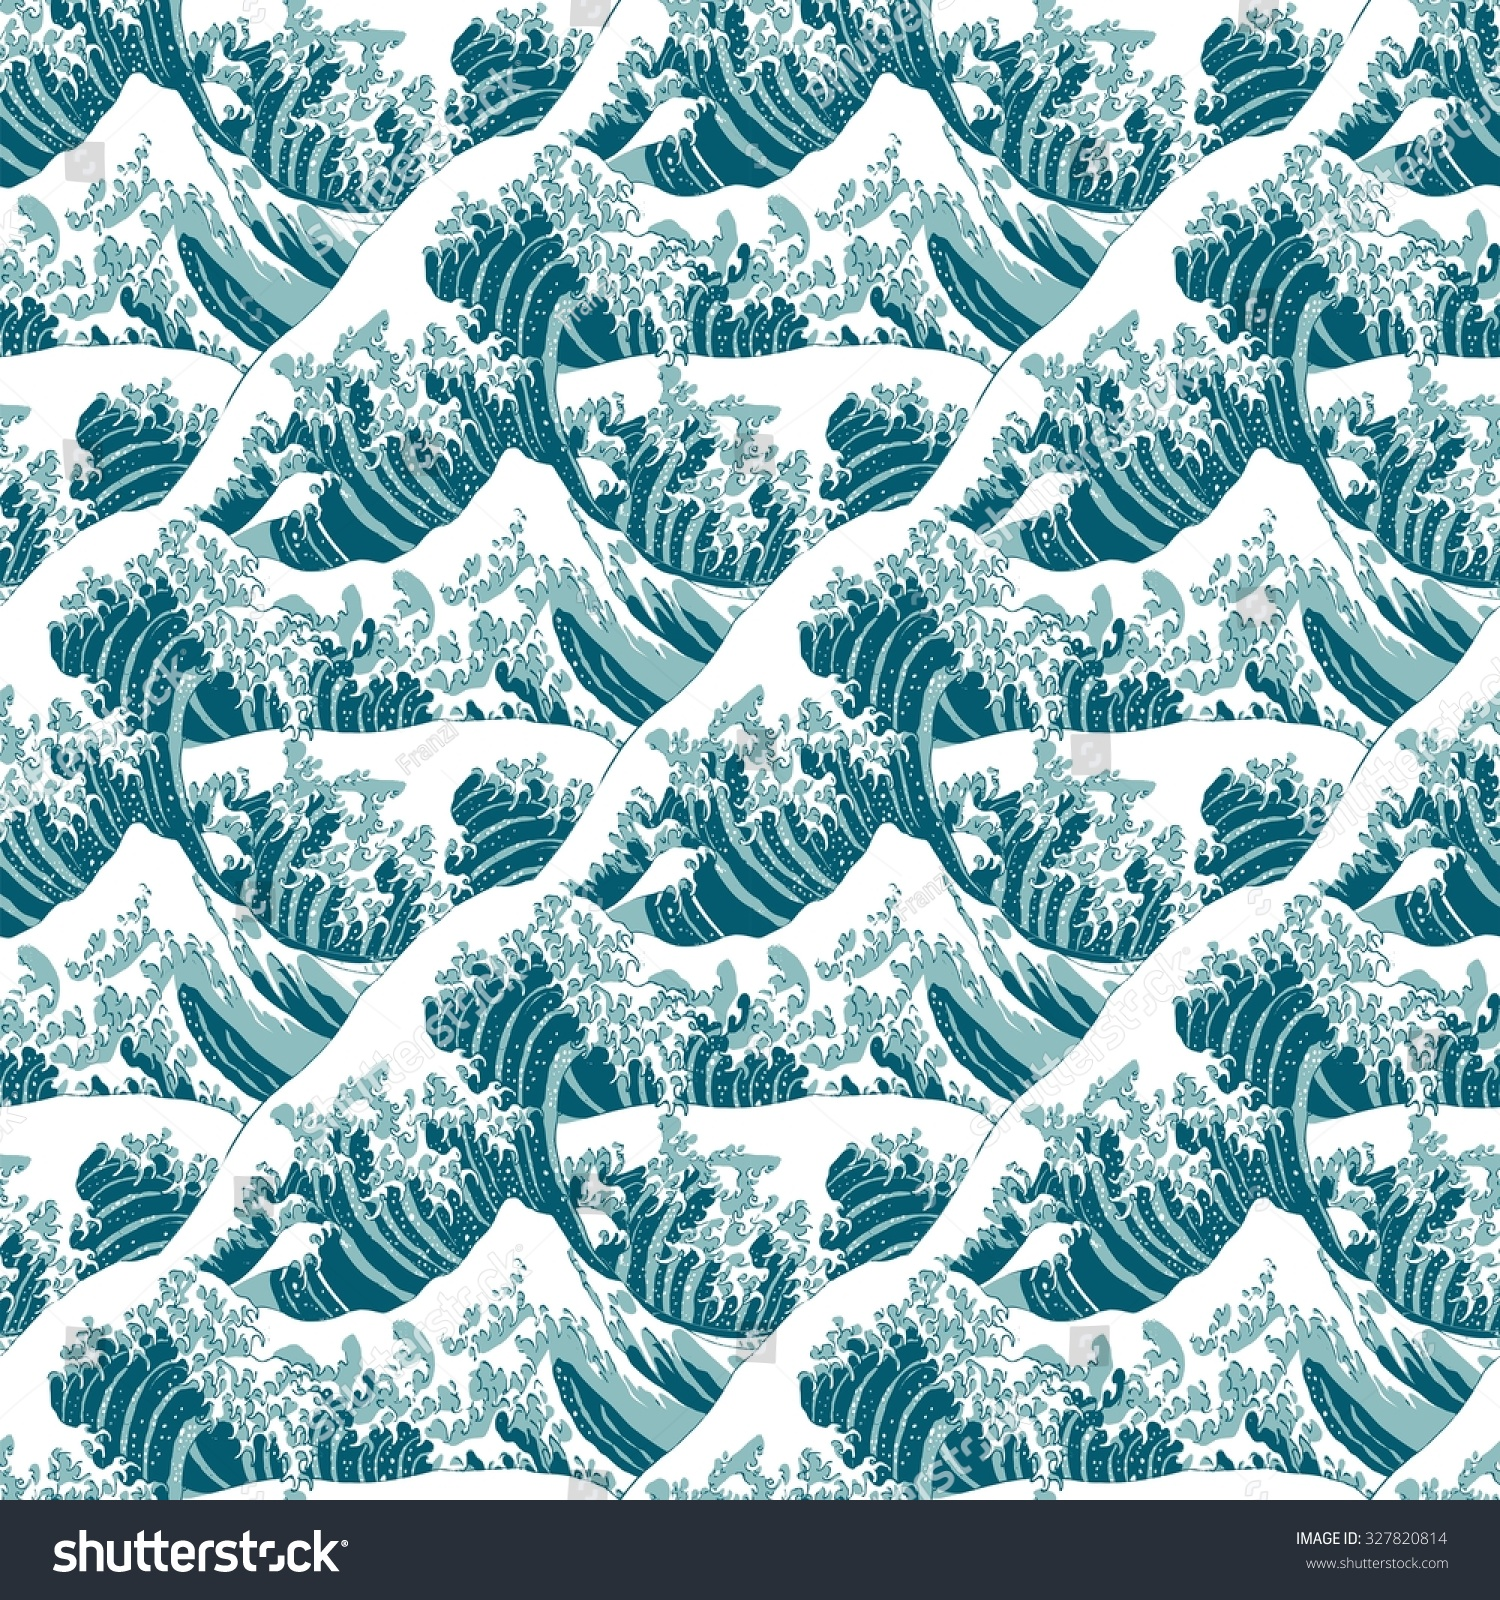 analysis of the great wave off The great wave off kanagawa by hokusai coloring page from hokusai category select from 30198 printable crafts of cartoons, nature, animals, bible and many more.